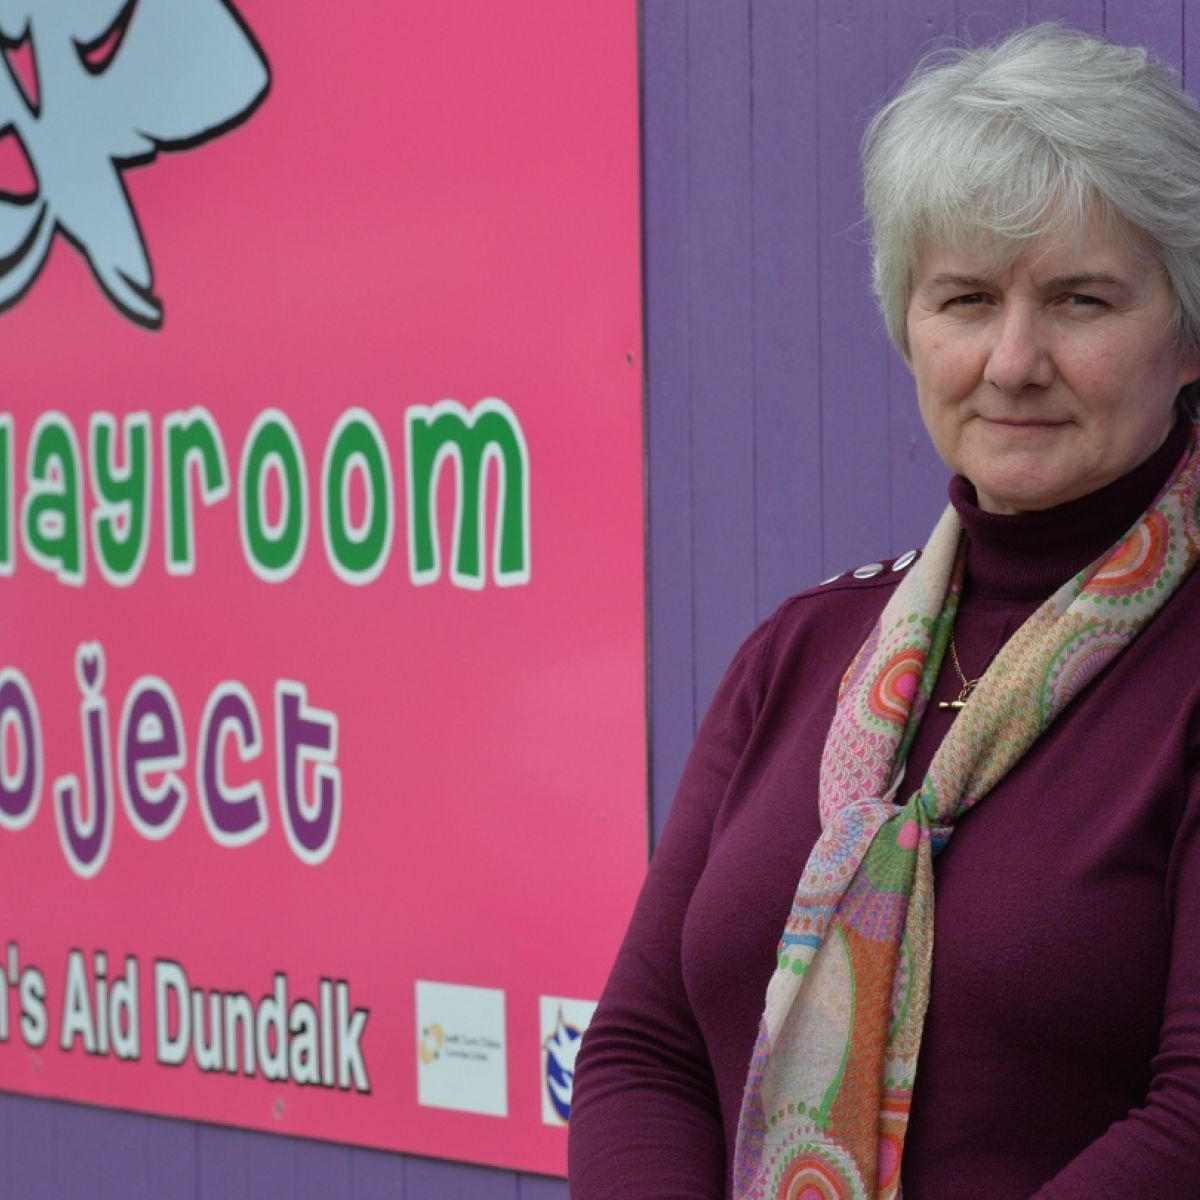 Apache Dundalk in Co Louth - Order food for - Just Eat